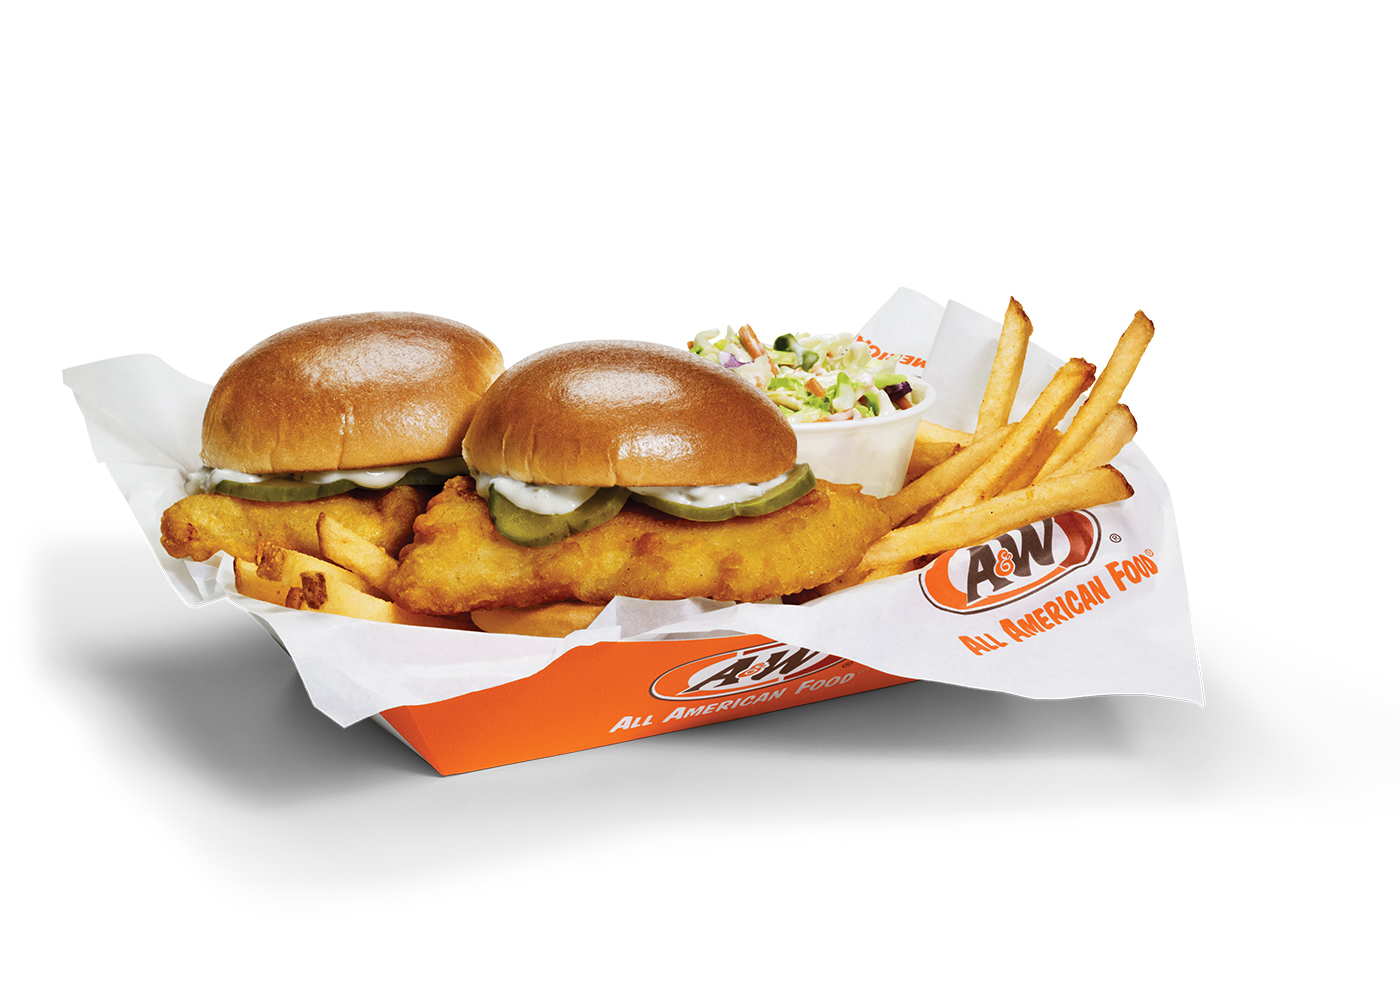 Photo of Cod Sliders Basket featuring two Cod Sliders, fries, and coleslaw in A&W-branded packaging.